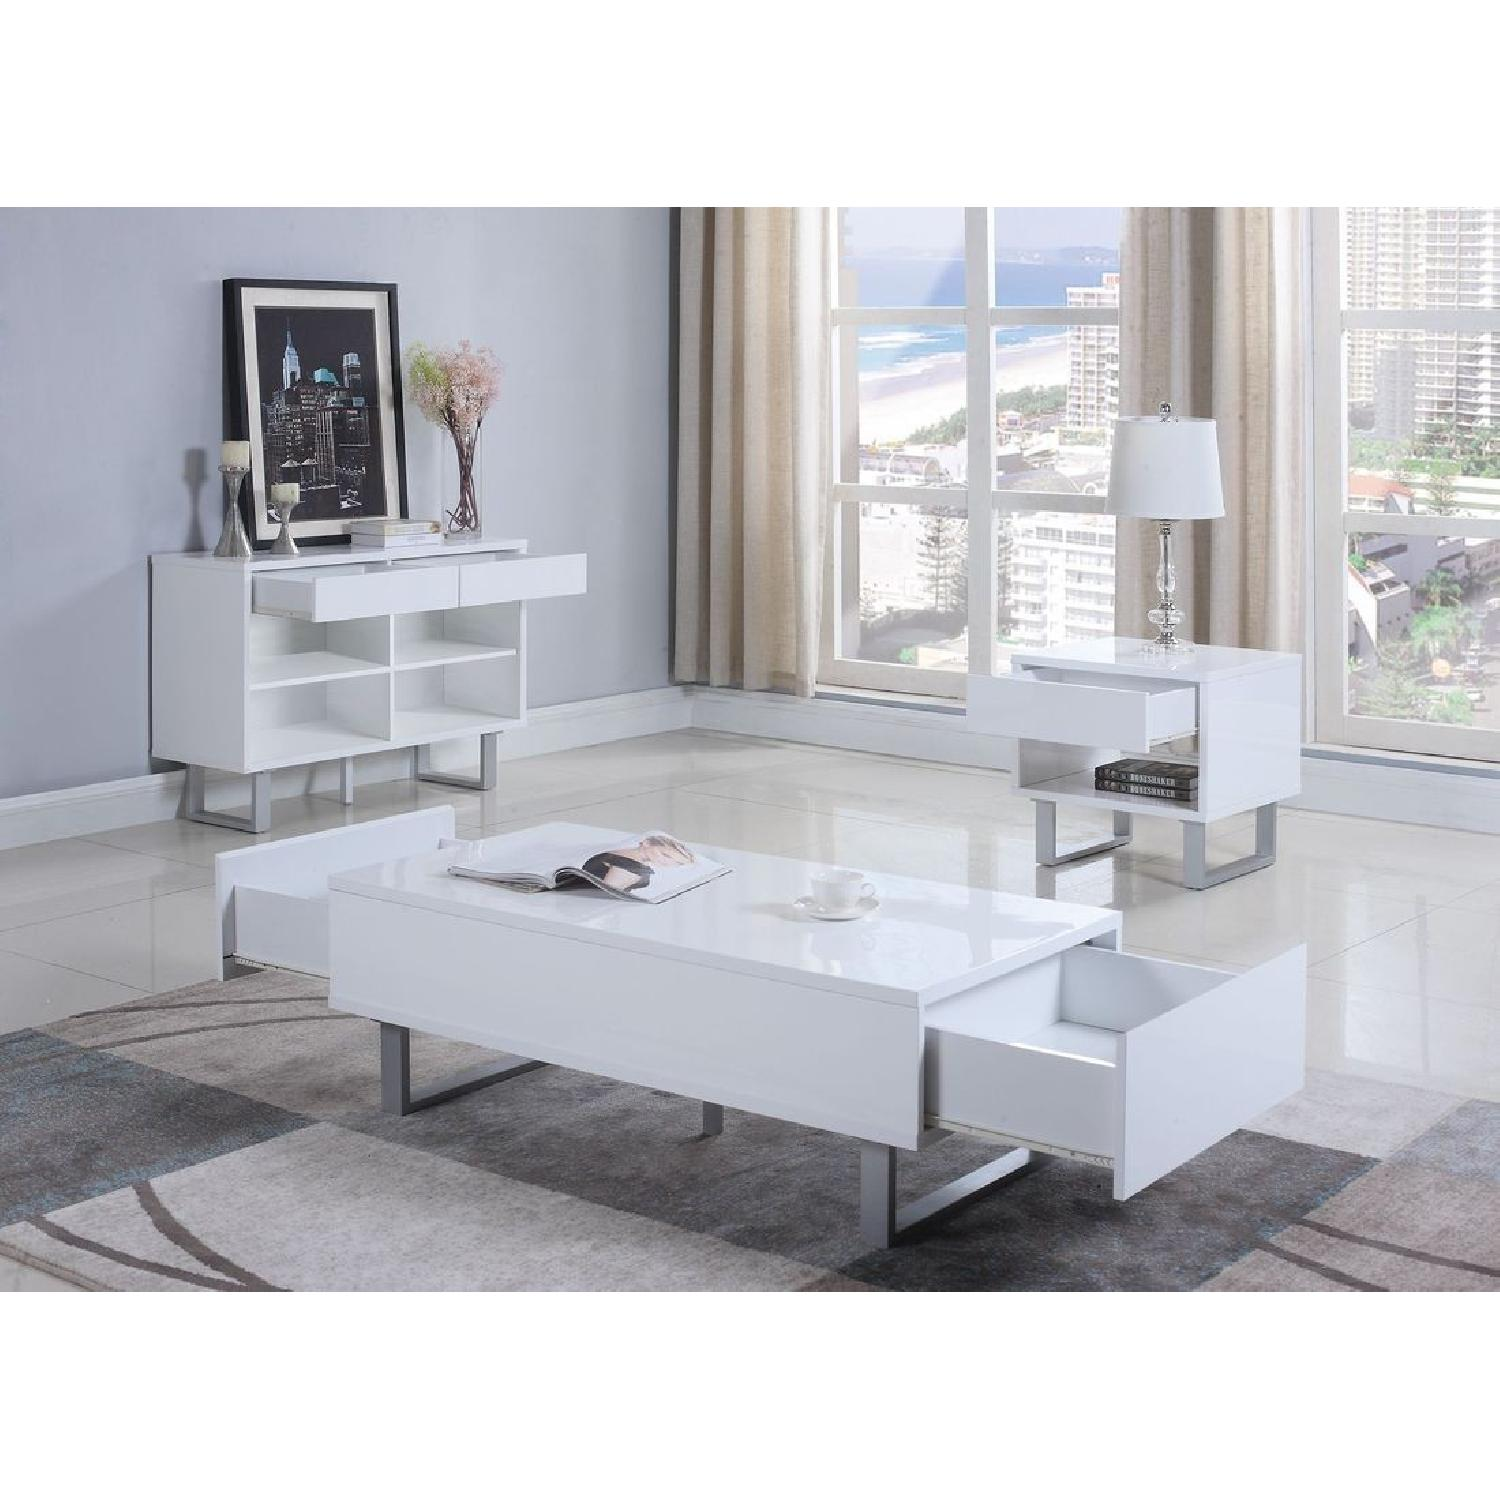 Contemporary Sofa Table in White Gloss w/ Drawers-1